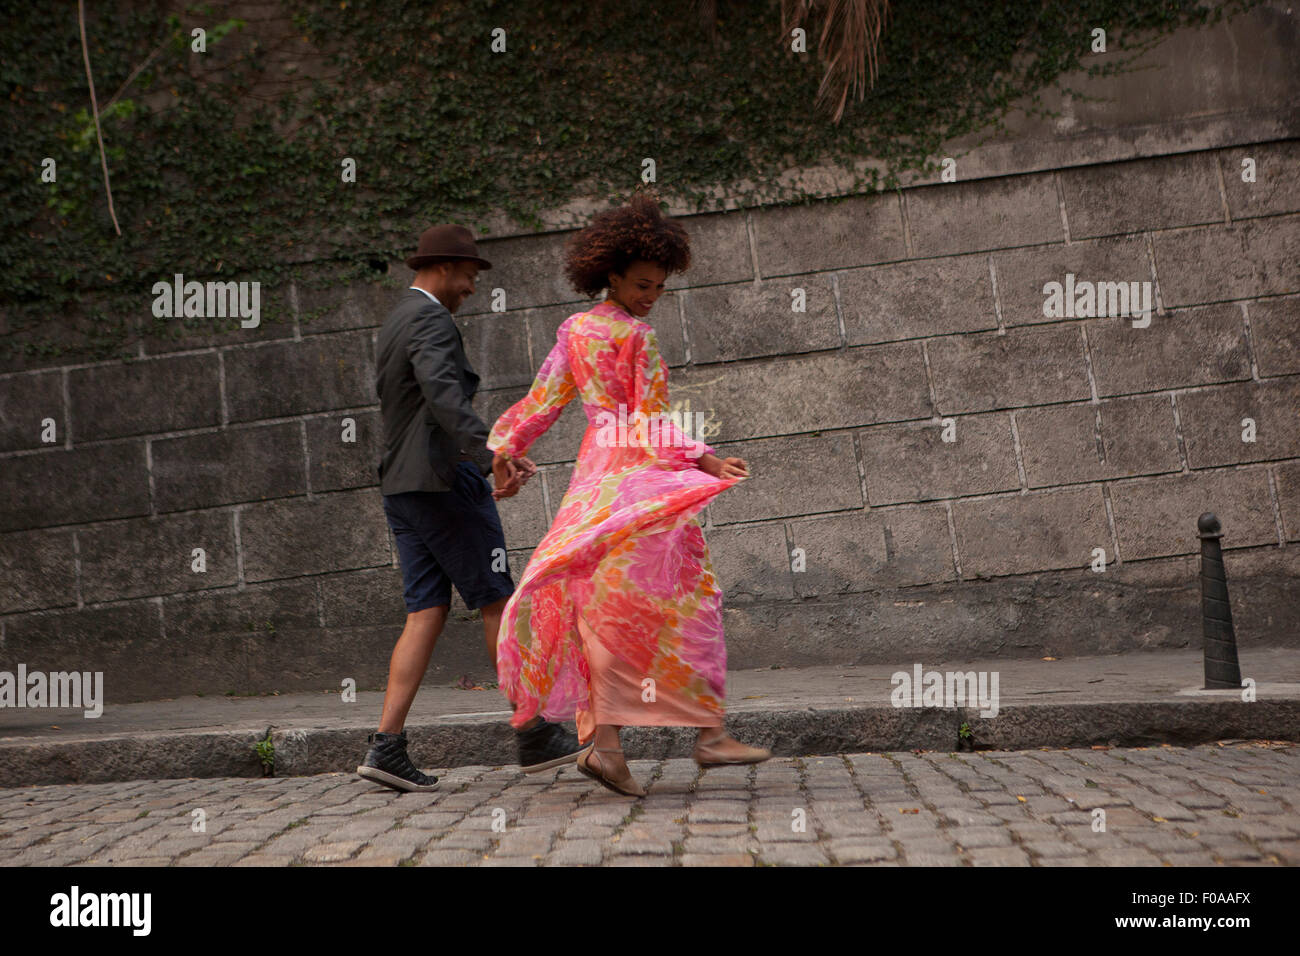 Couple walking along cobbled street, rear view - Stock Image